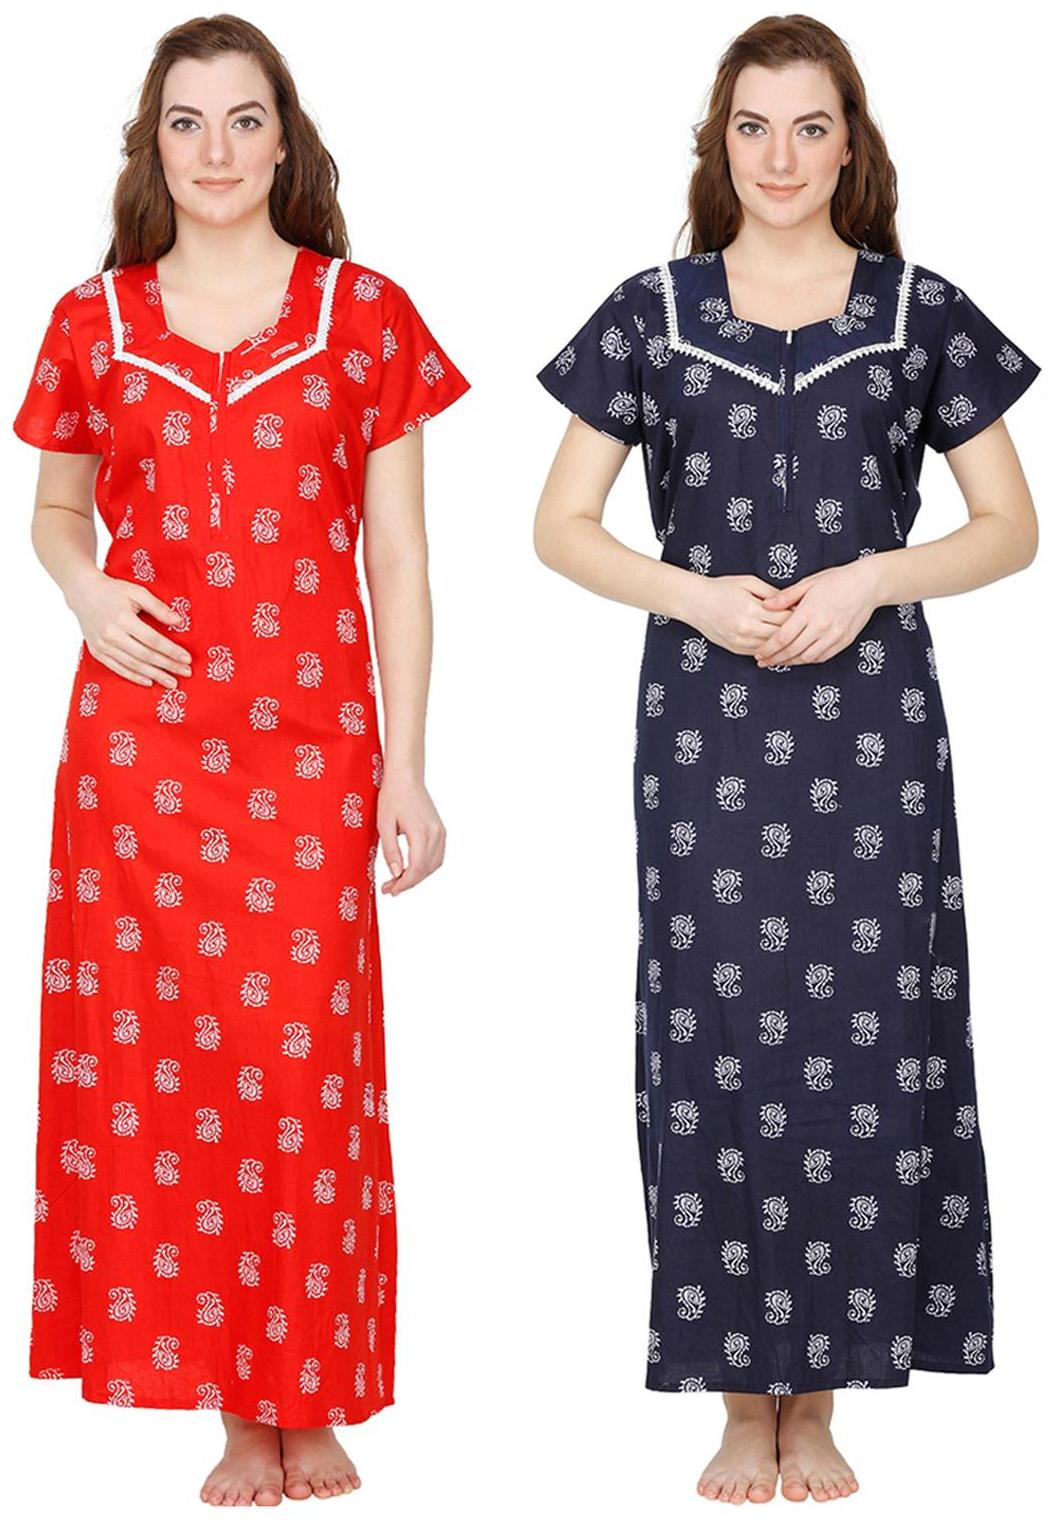 8c4875a3a6 Night Dresses   Nighties – Buy Night Suits